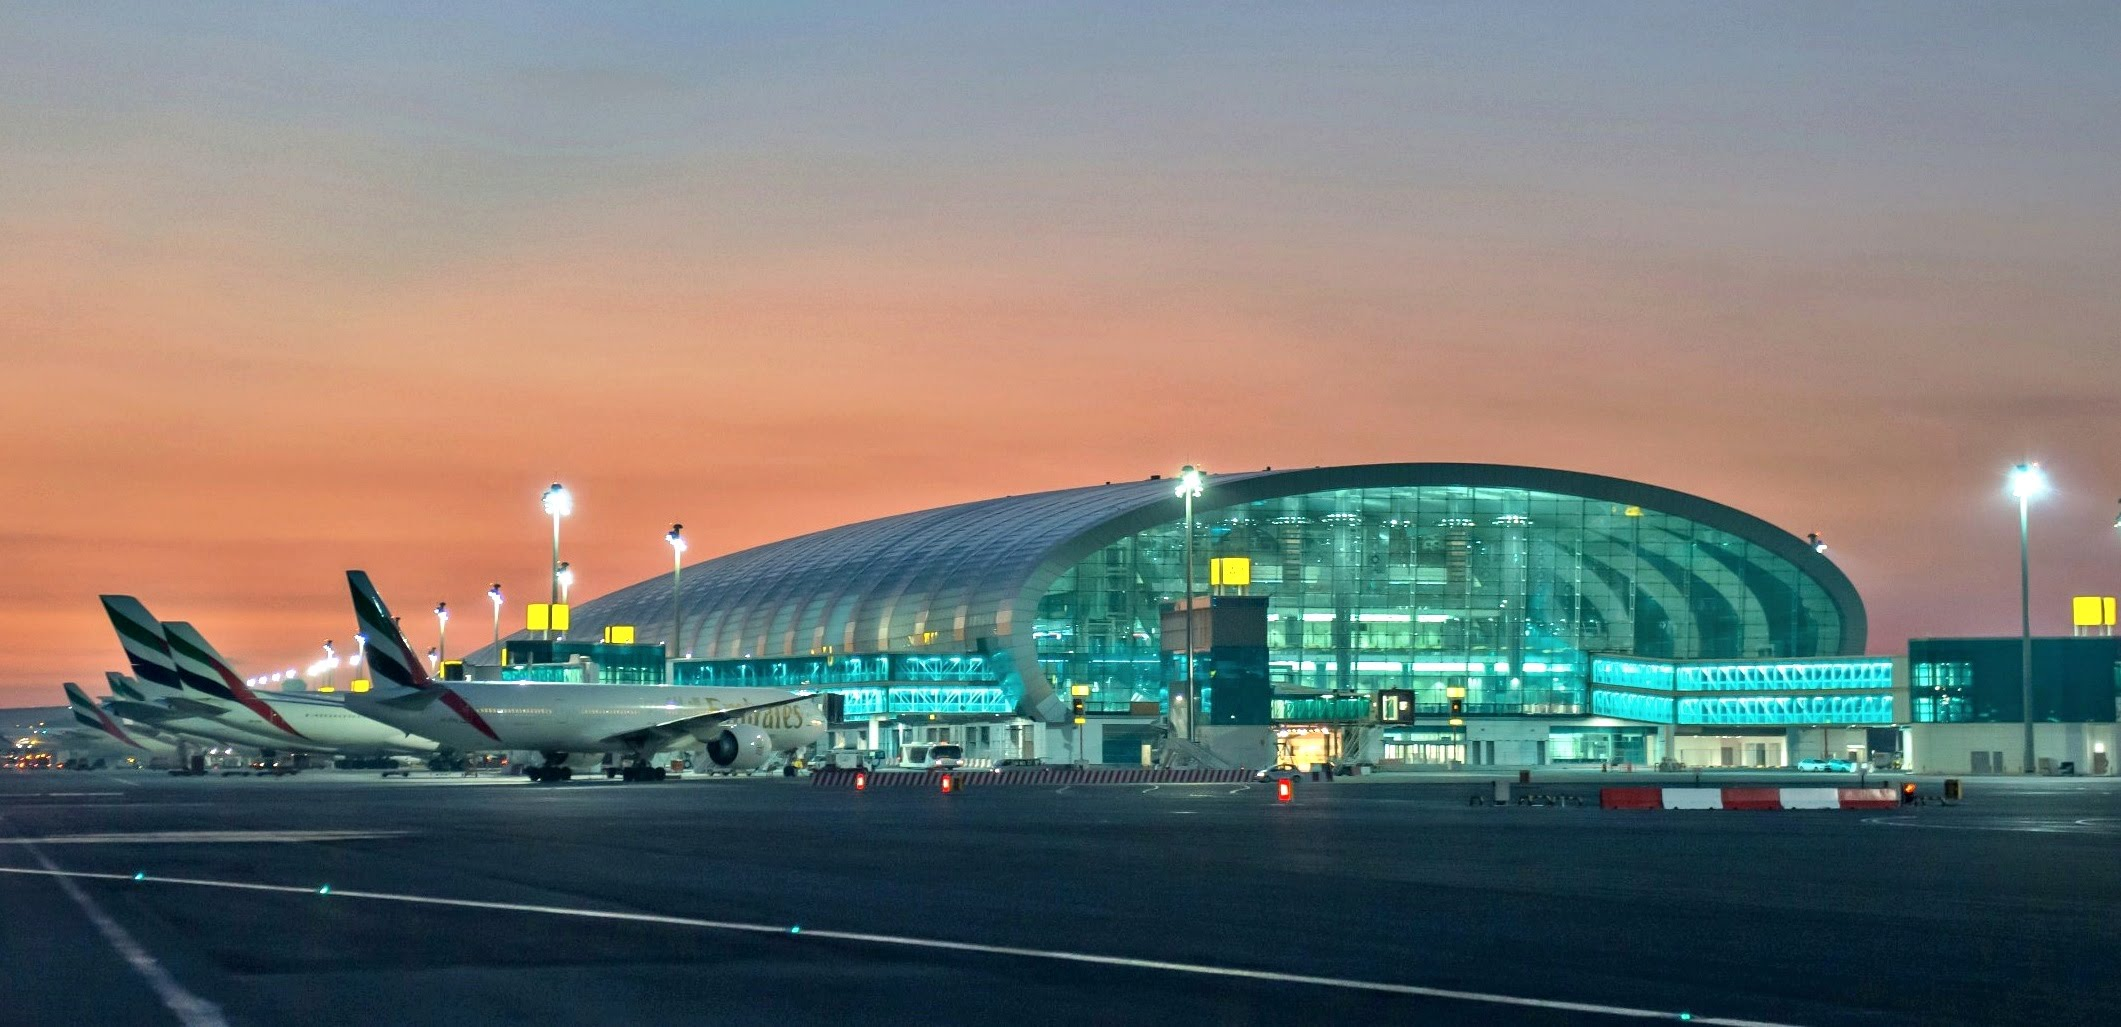 Dubai remains world's busiest int'l airport, saw over 83 mn passengers in 2016